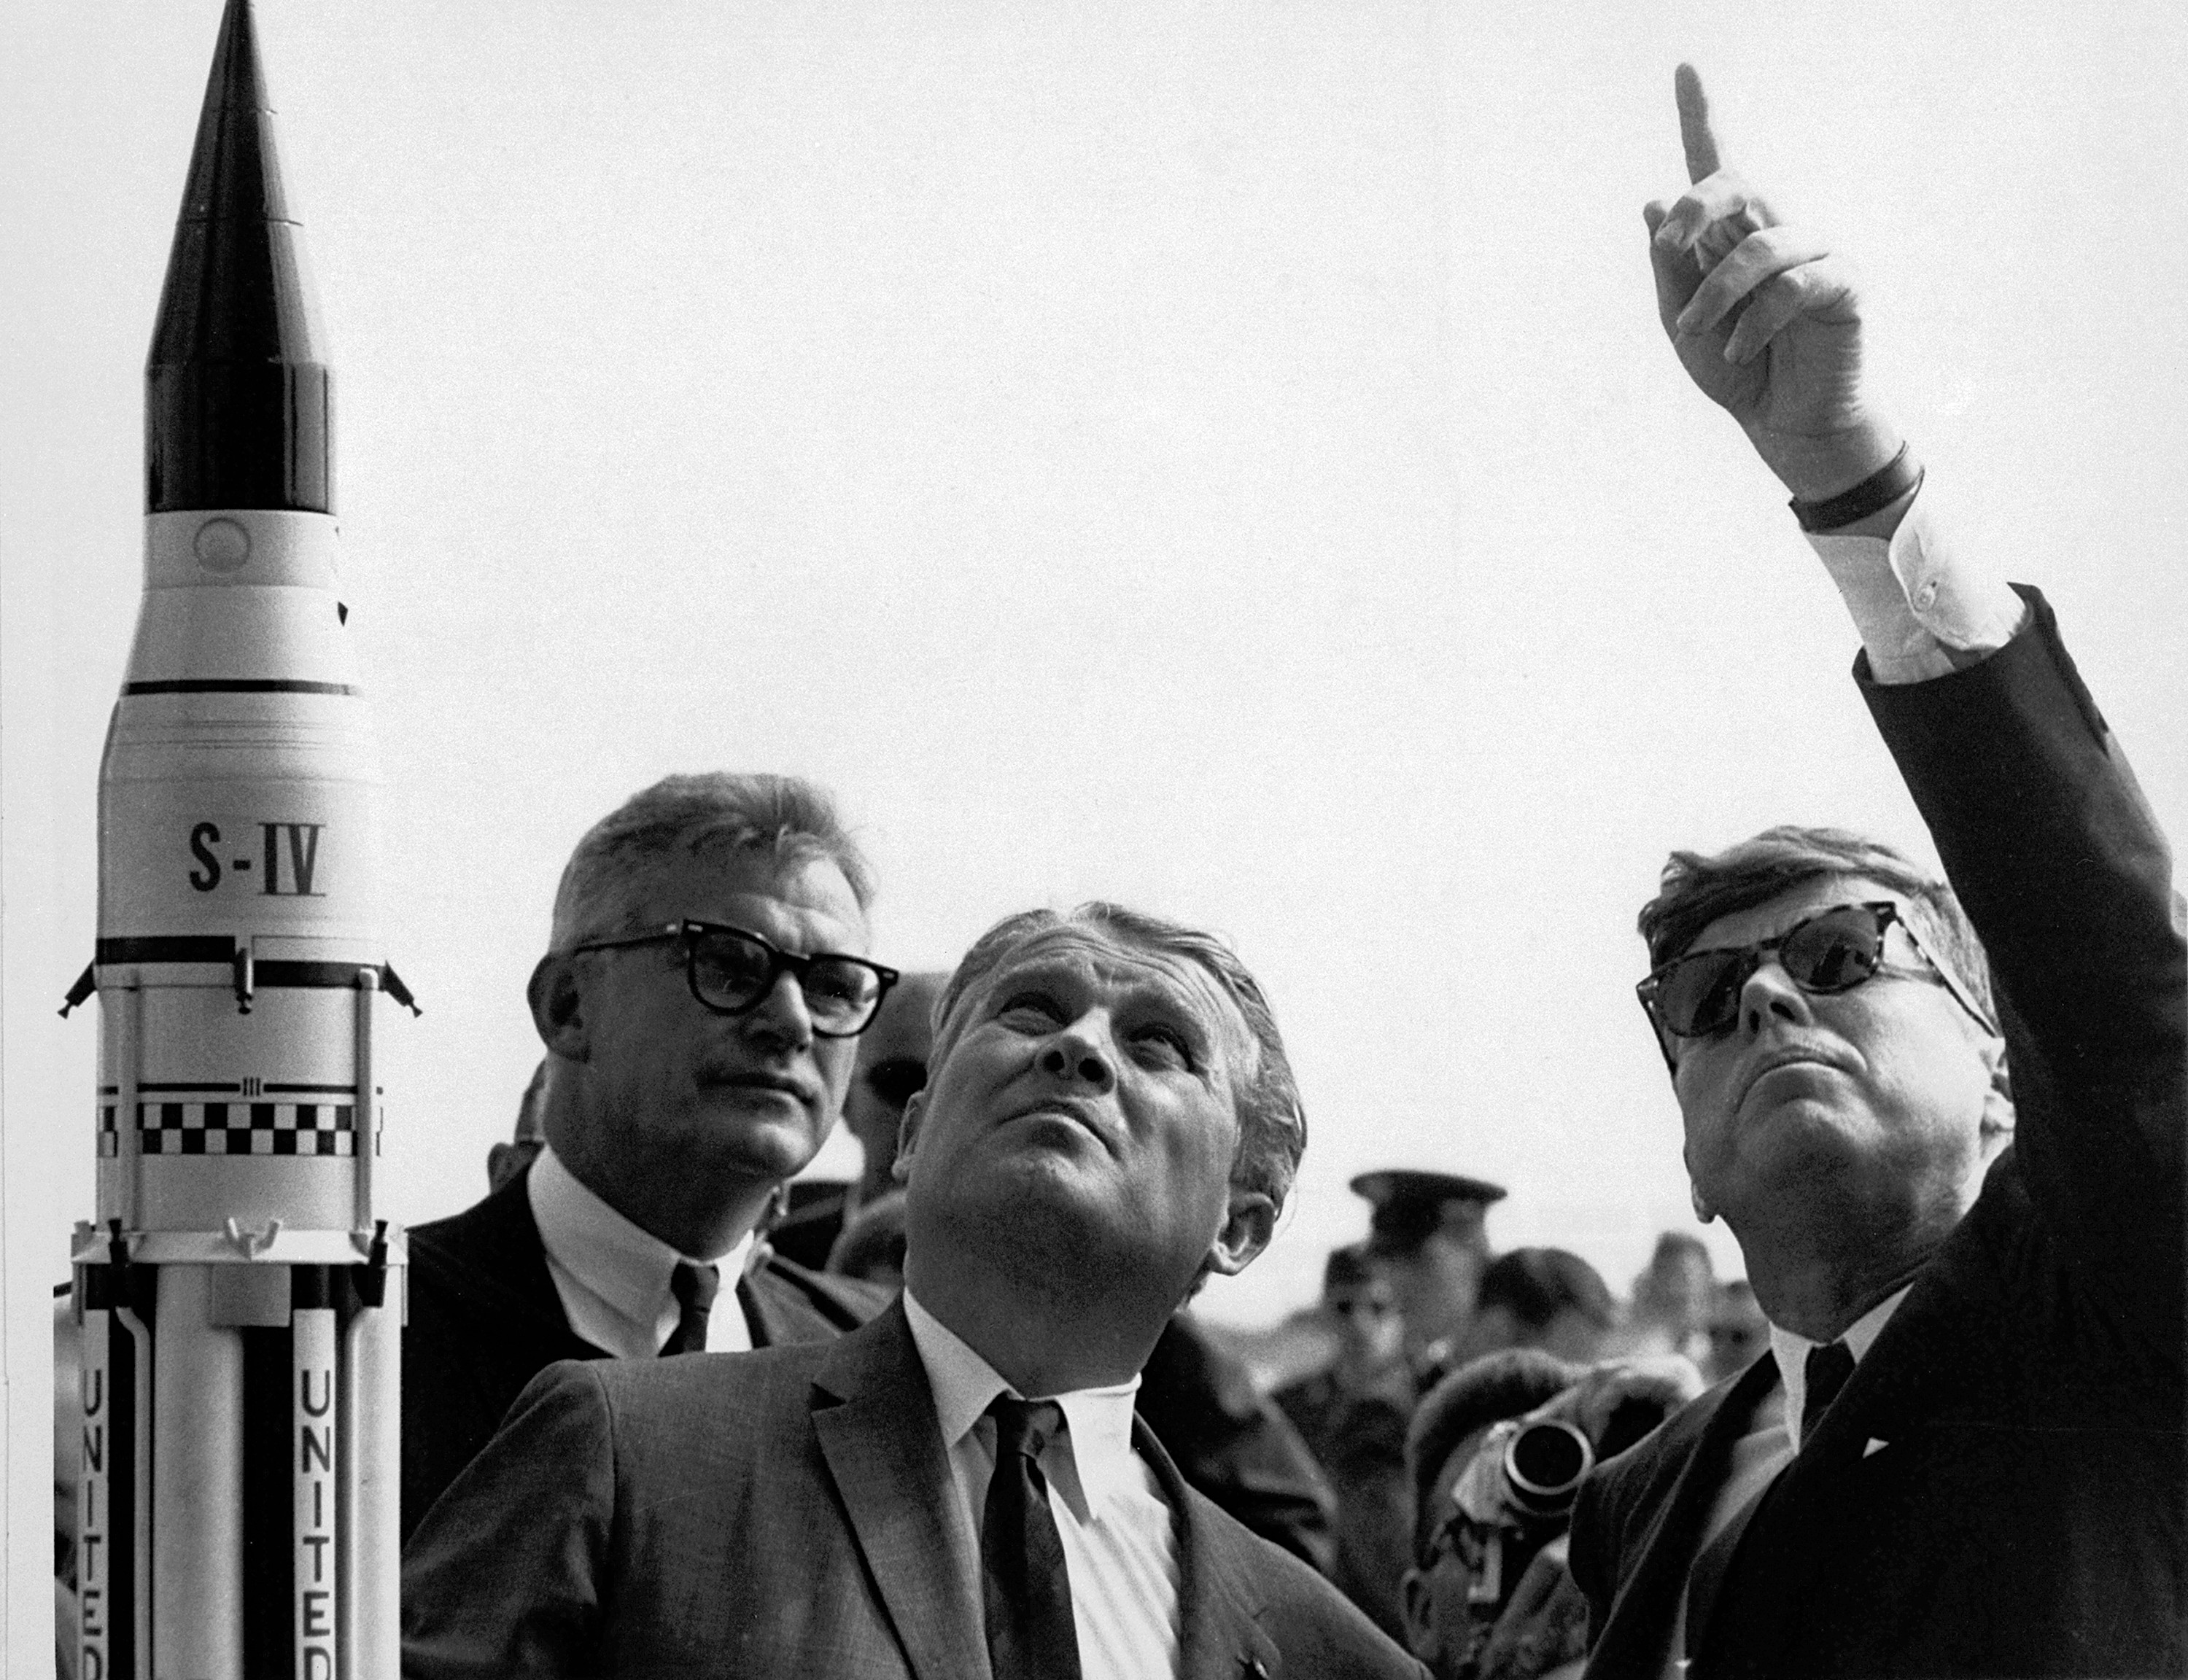 Saturn I SA-5 - 29.1.1964 Seamans%2C_von_Braun_and_President_Kennedy_at_Cape_Canaveral_-_GPN-2000-001843